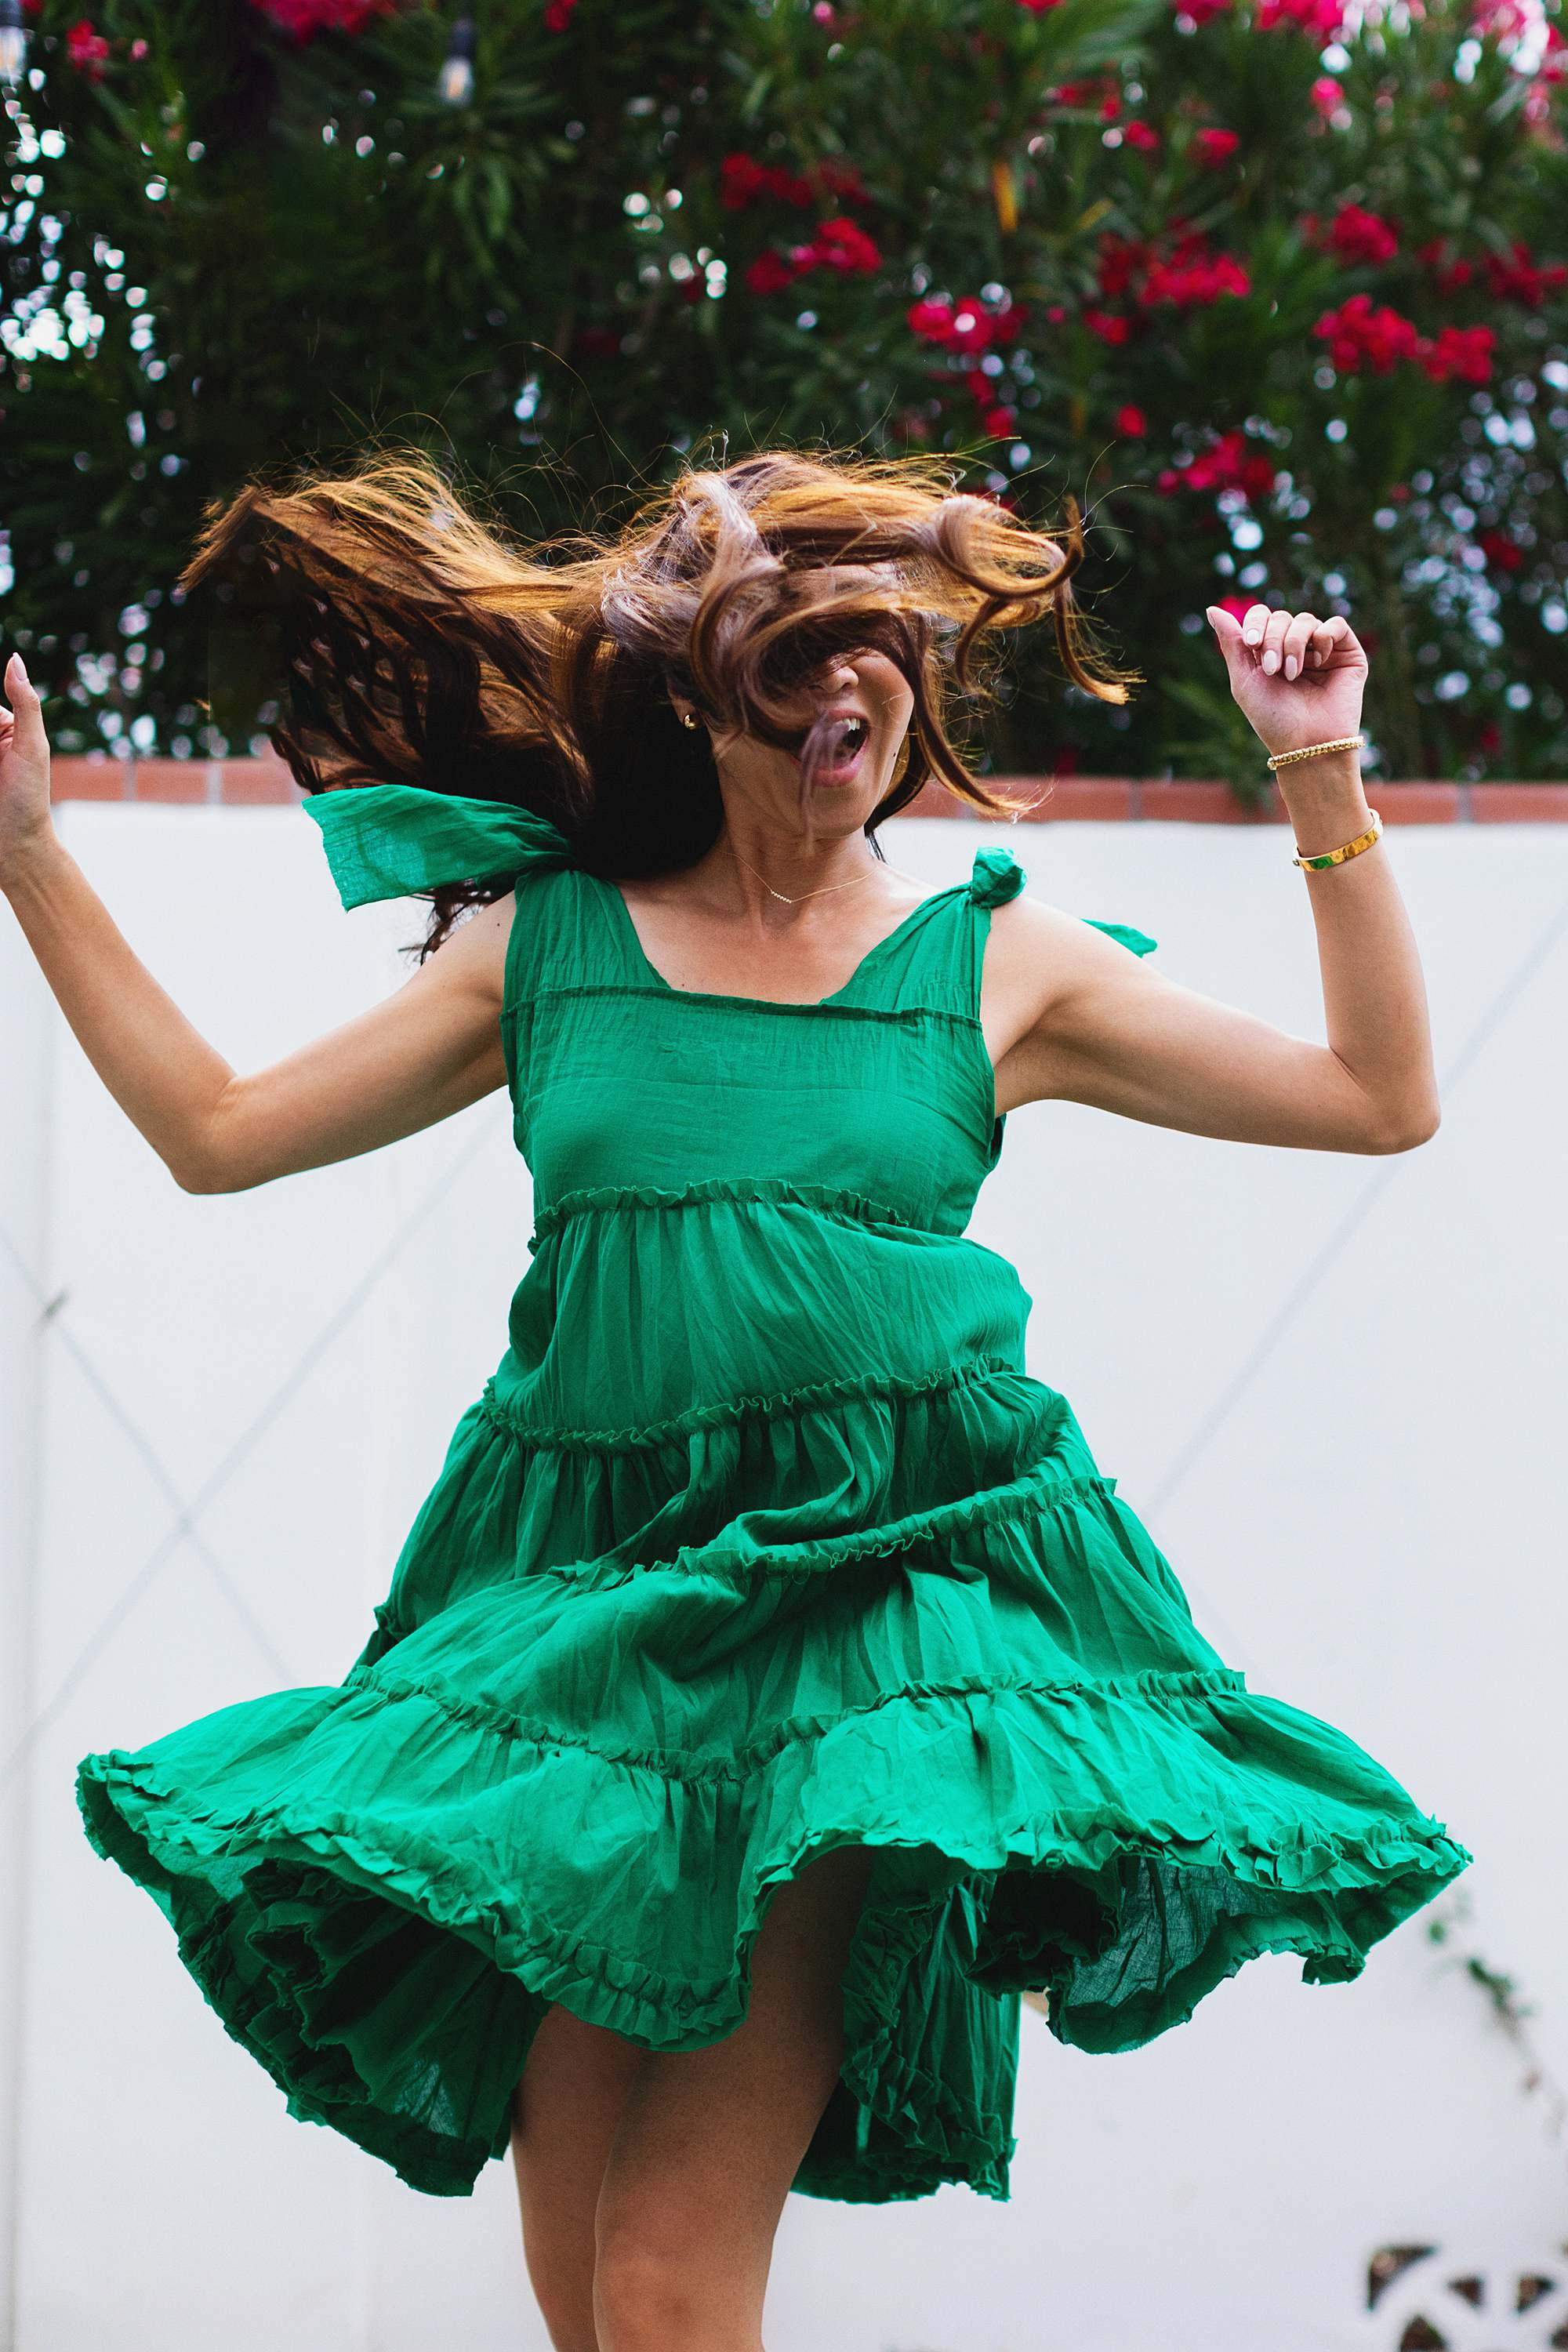 DIY frill dress made from a long skirt sewing adult craft #adultcraft green ruffle dress great for summer